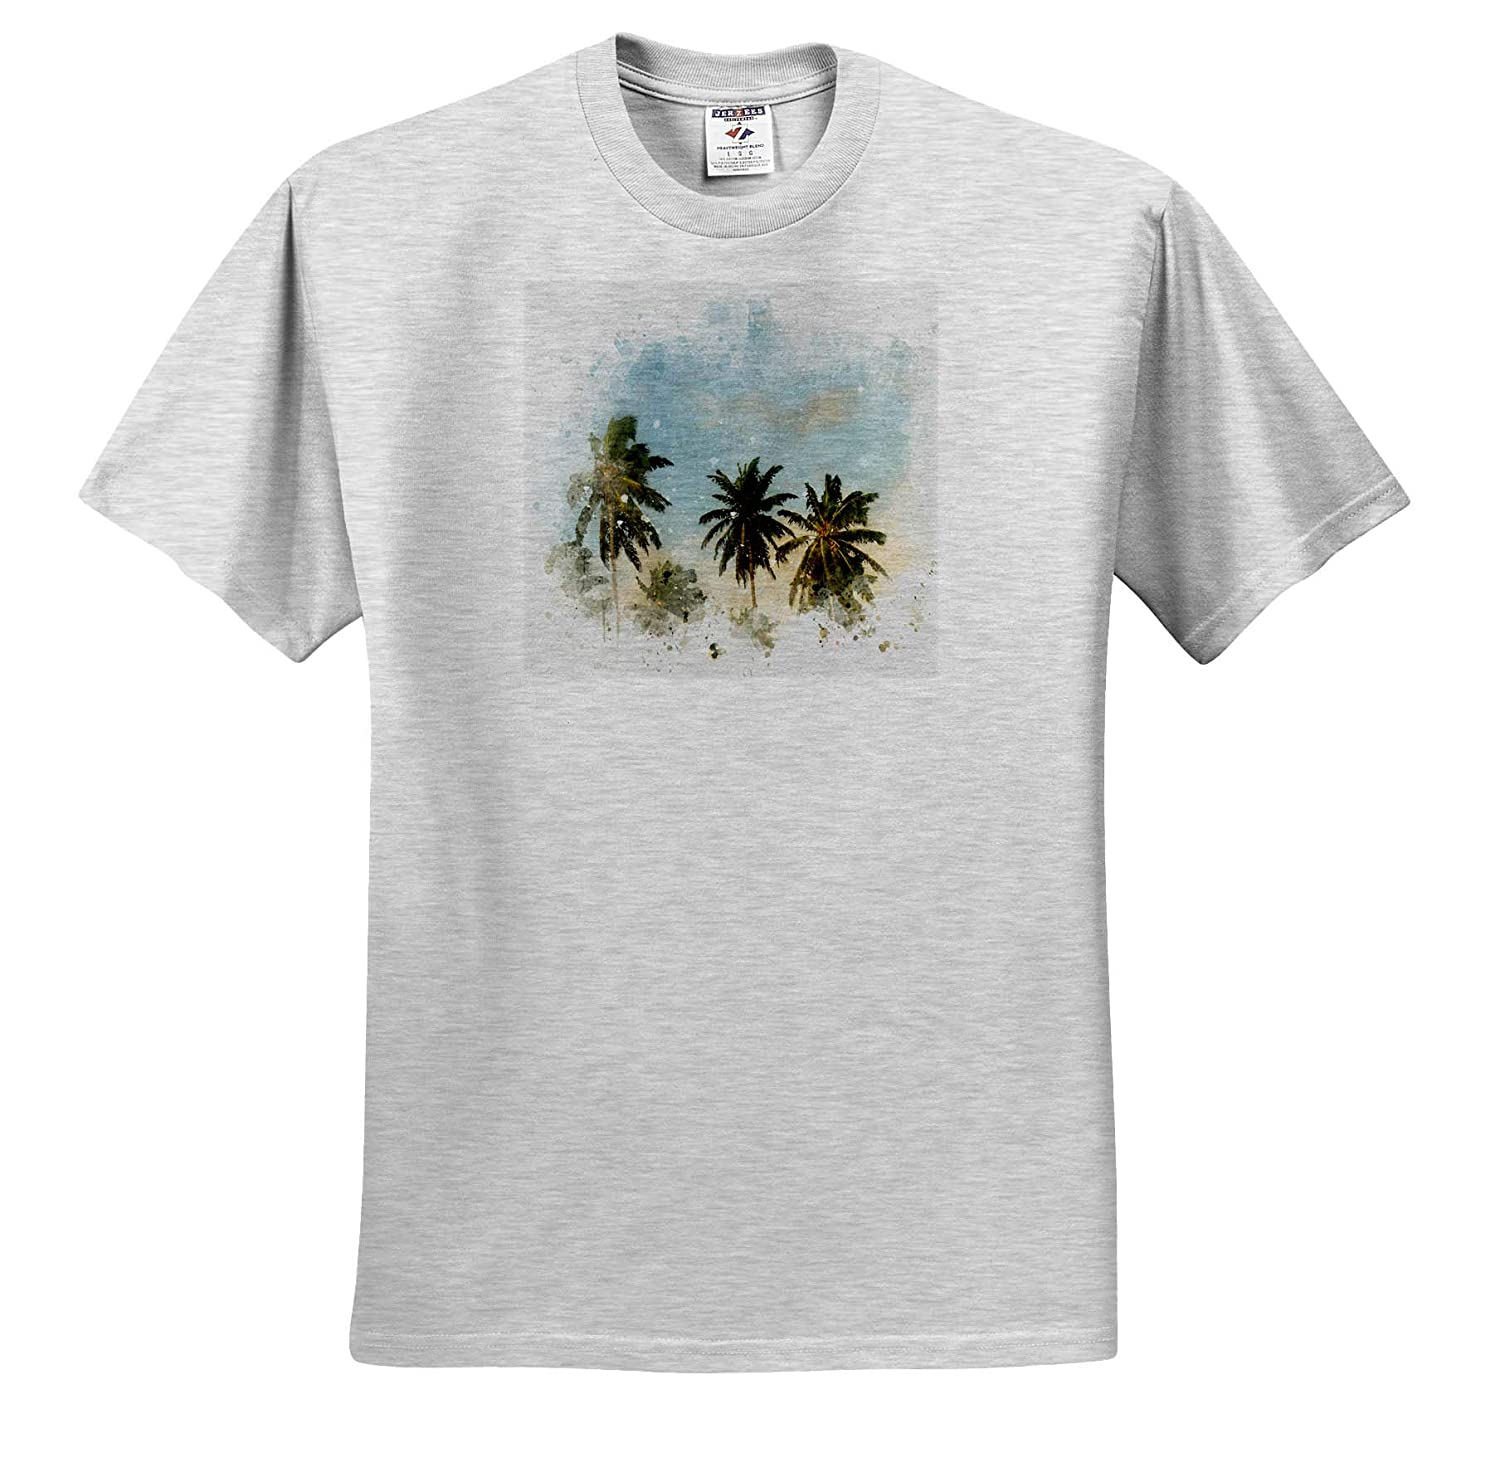 Image of Watercolor Palm Tree Art 3dRose Anne Marie Baugh ts/_318723 Adult T-Shirt XL Impressionist Mixed Media Art